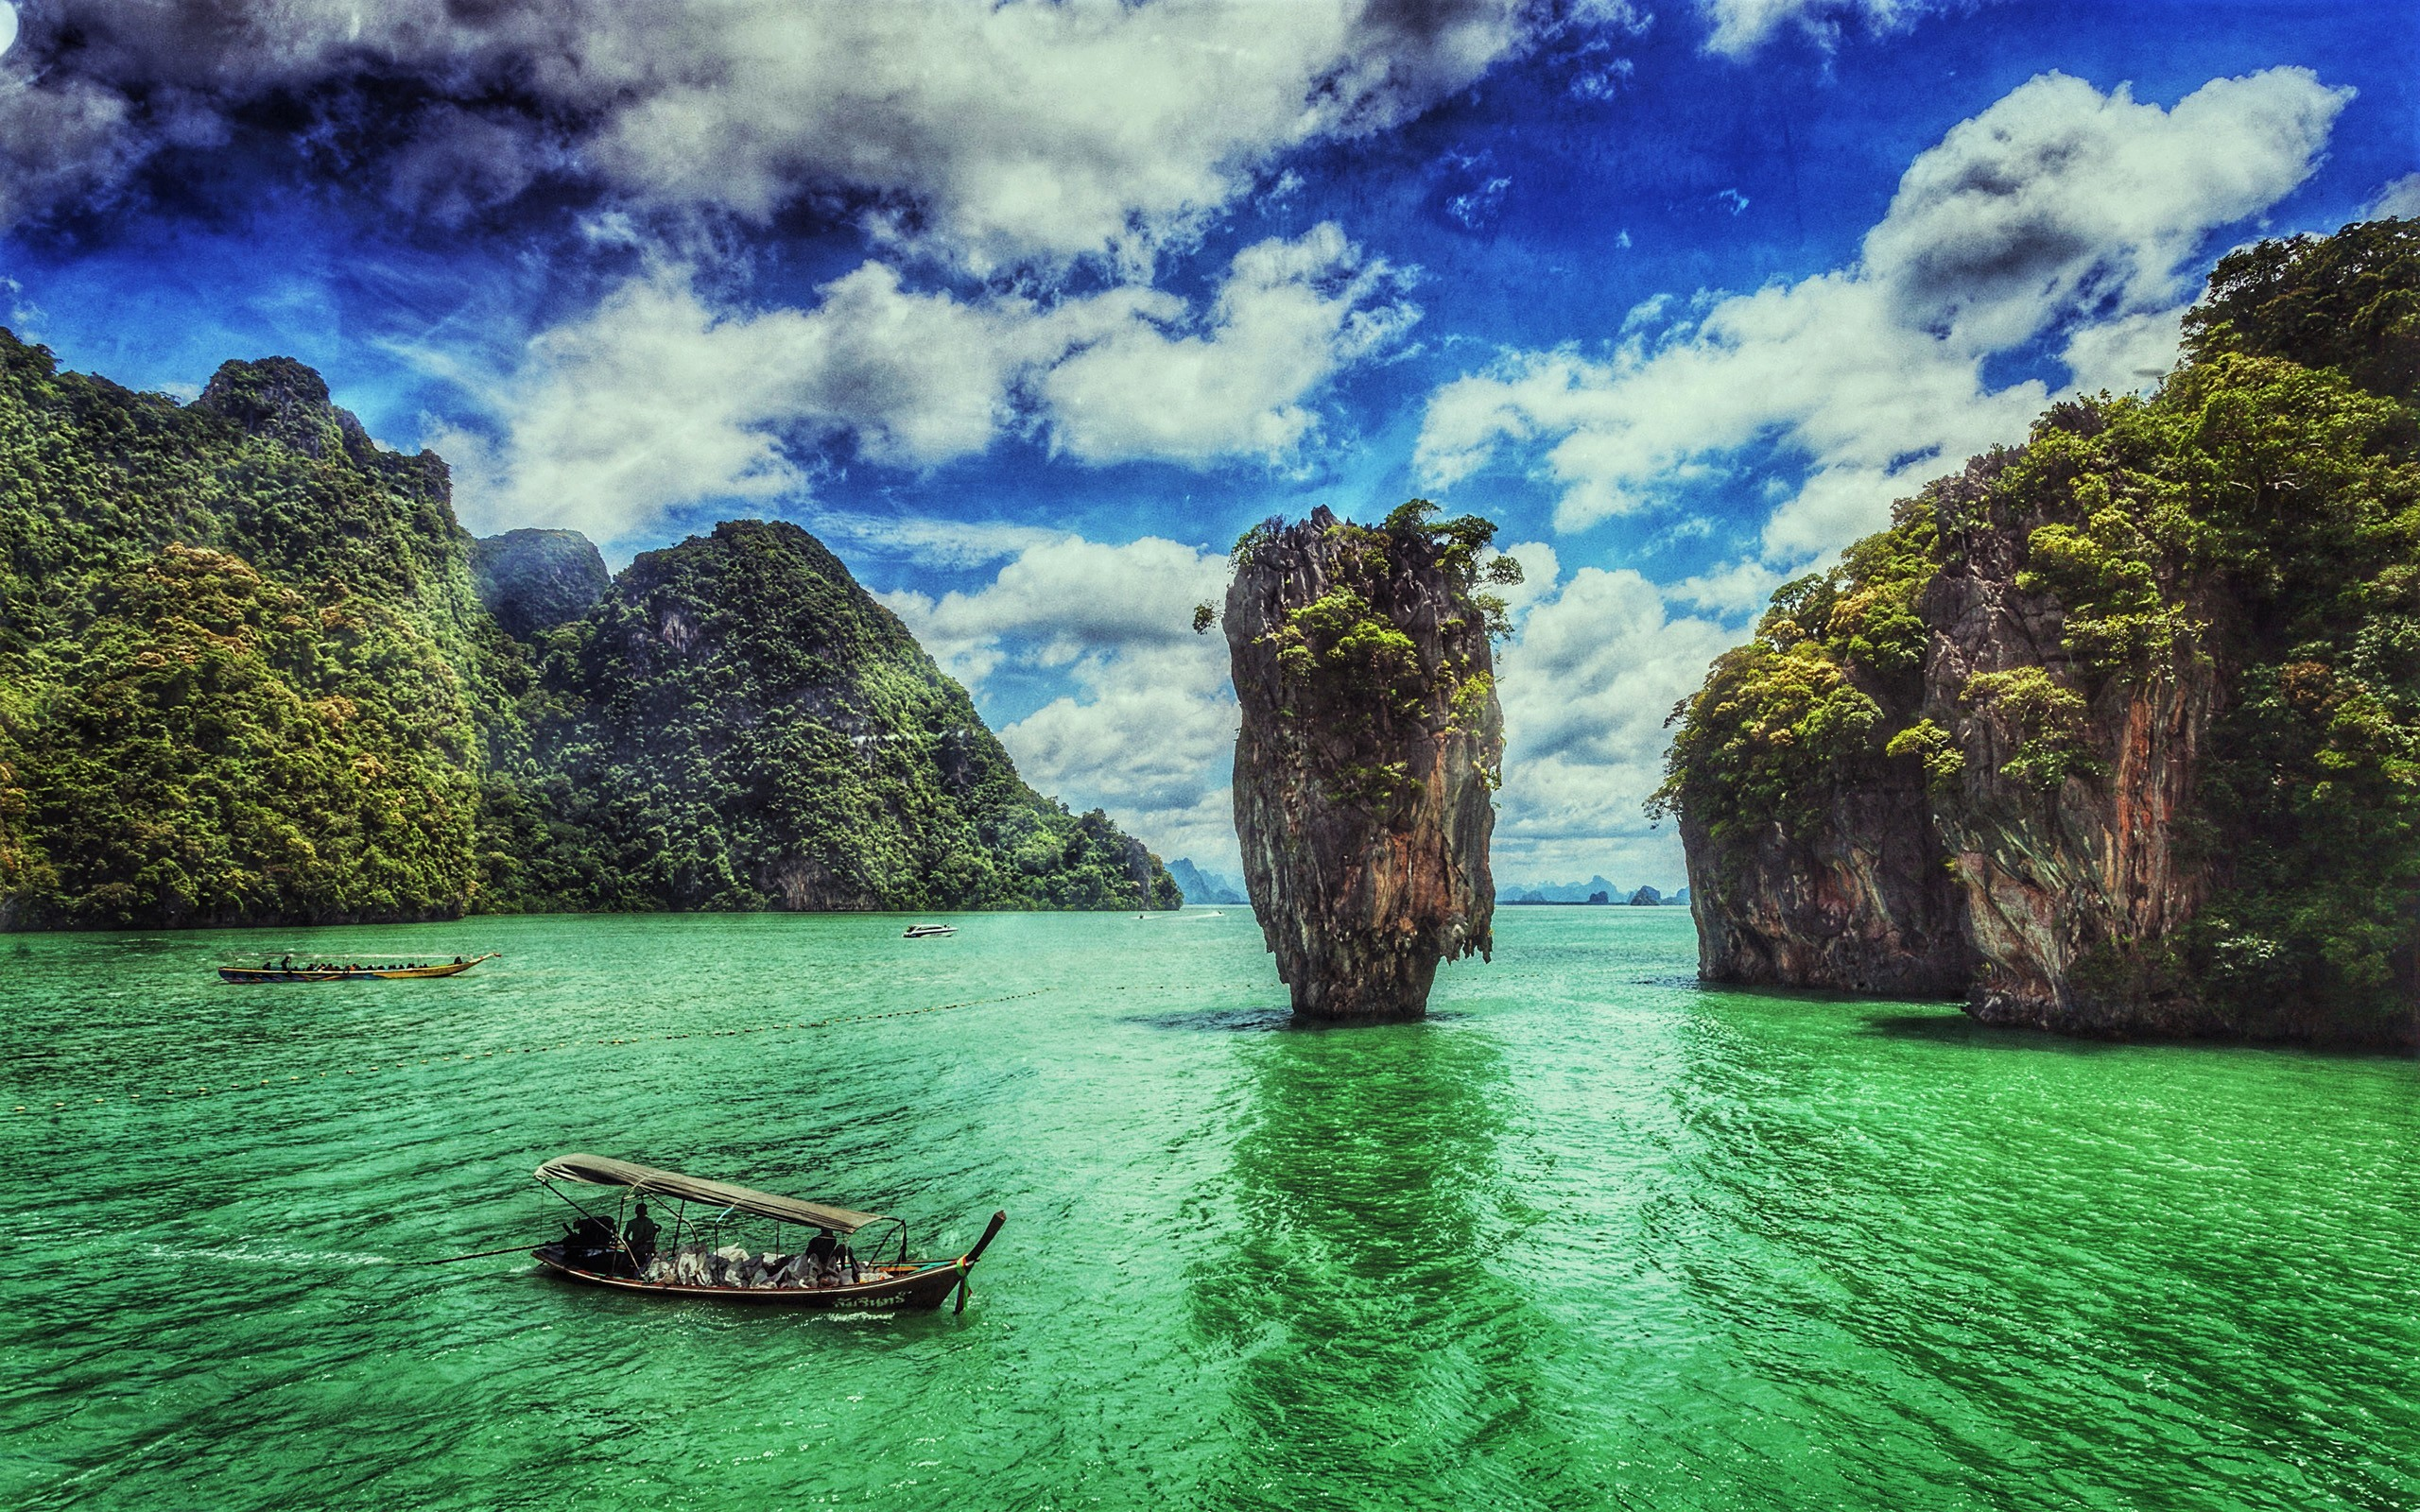 Boat Long Tail Boat Ocean Rock Sea Thailand Turquoise Vehicle 2560x1600